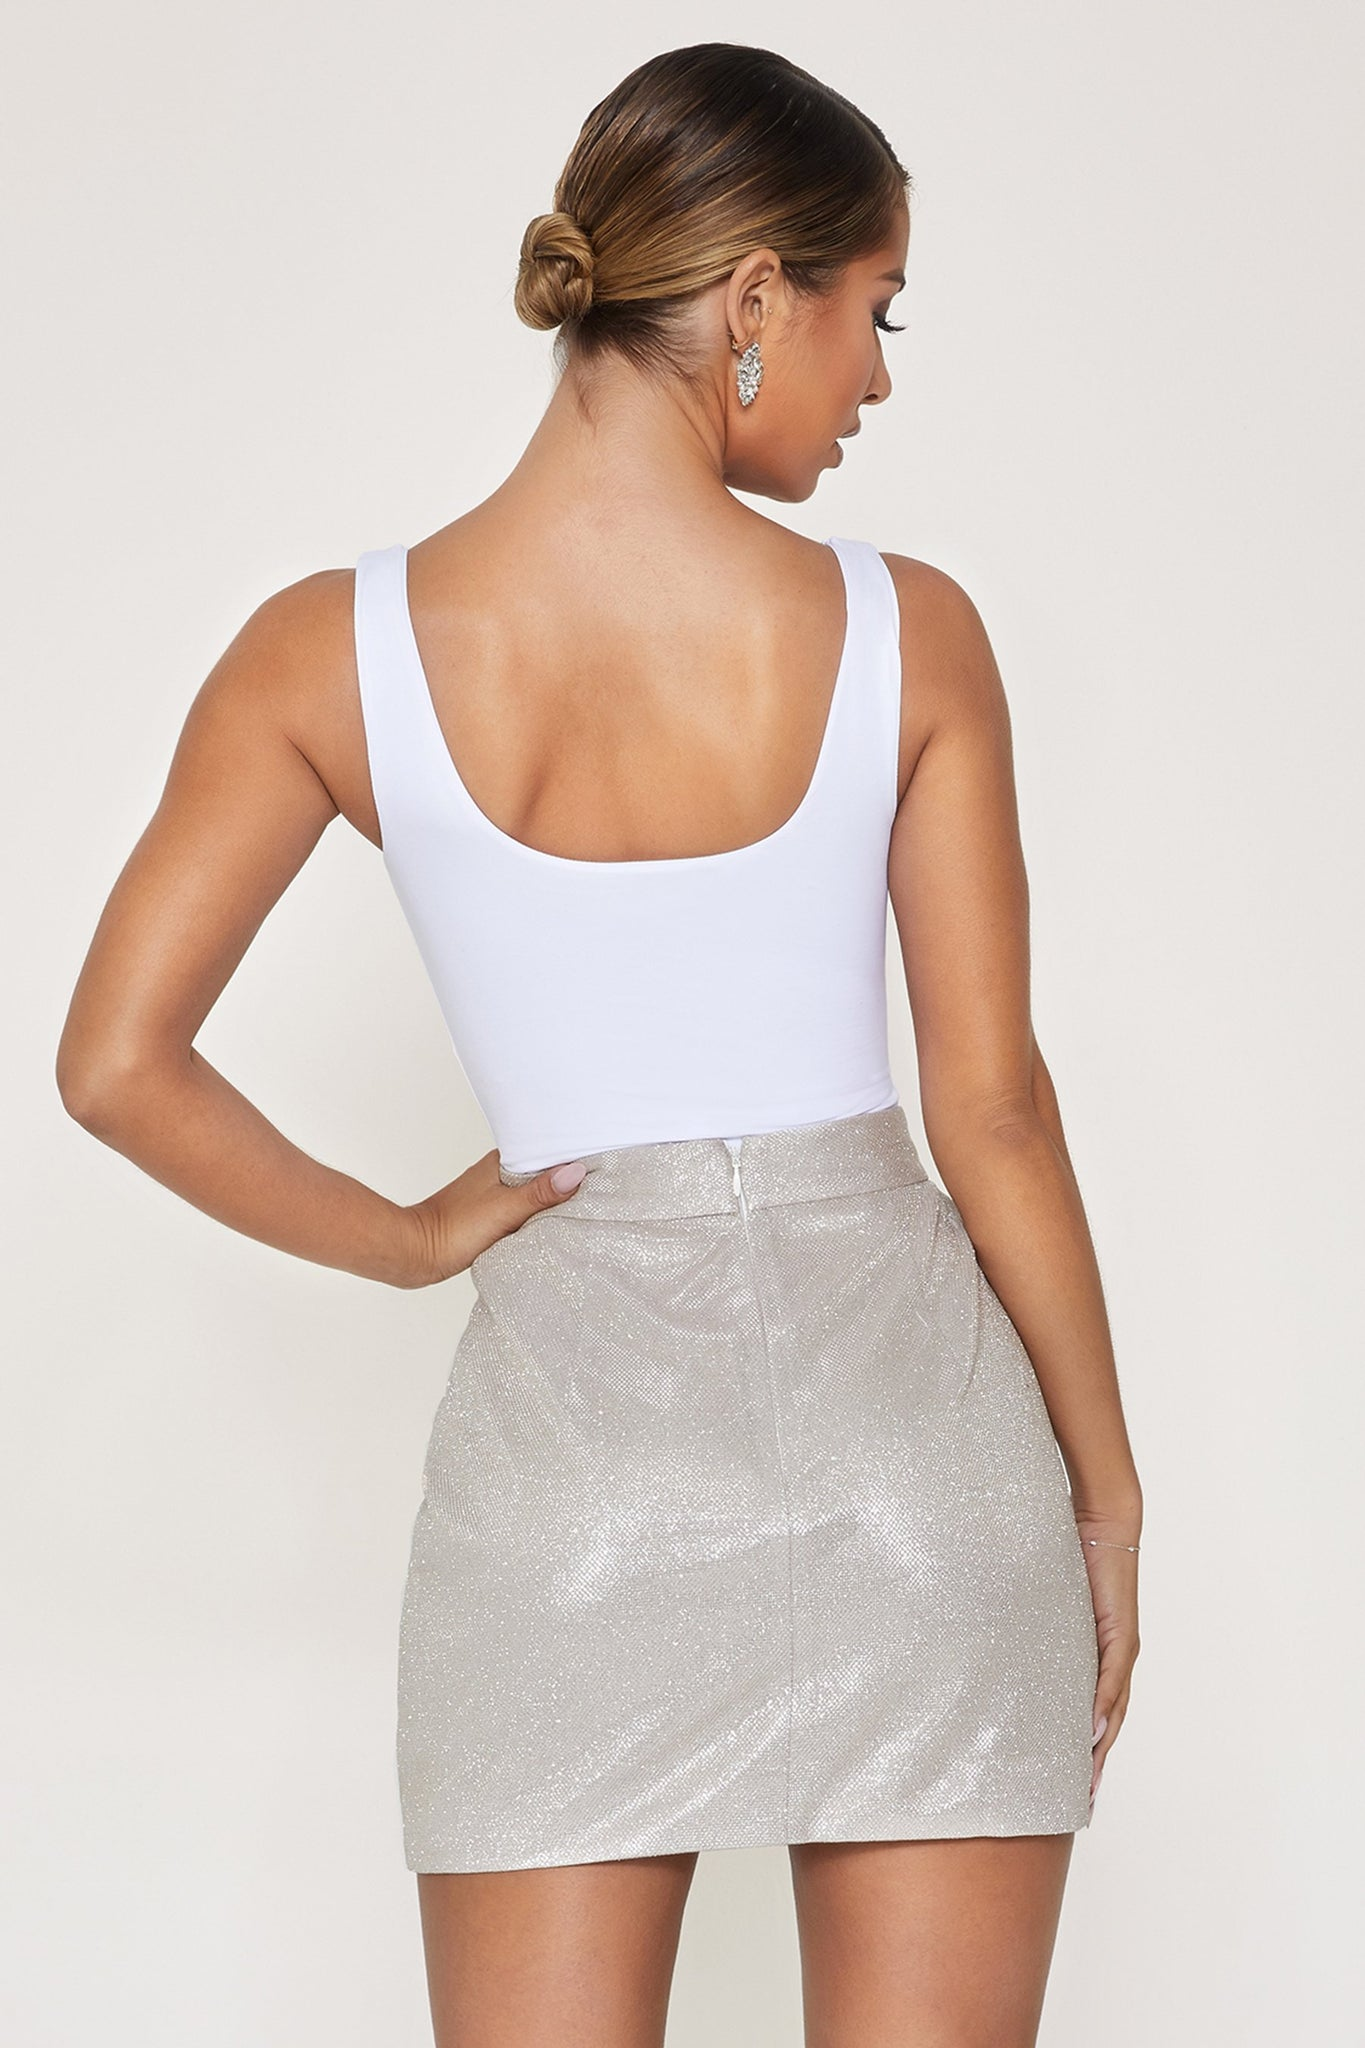 Vive High Waisted Mini Skirt - Silver - MESHKI